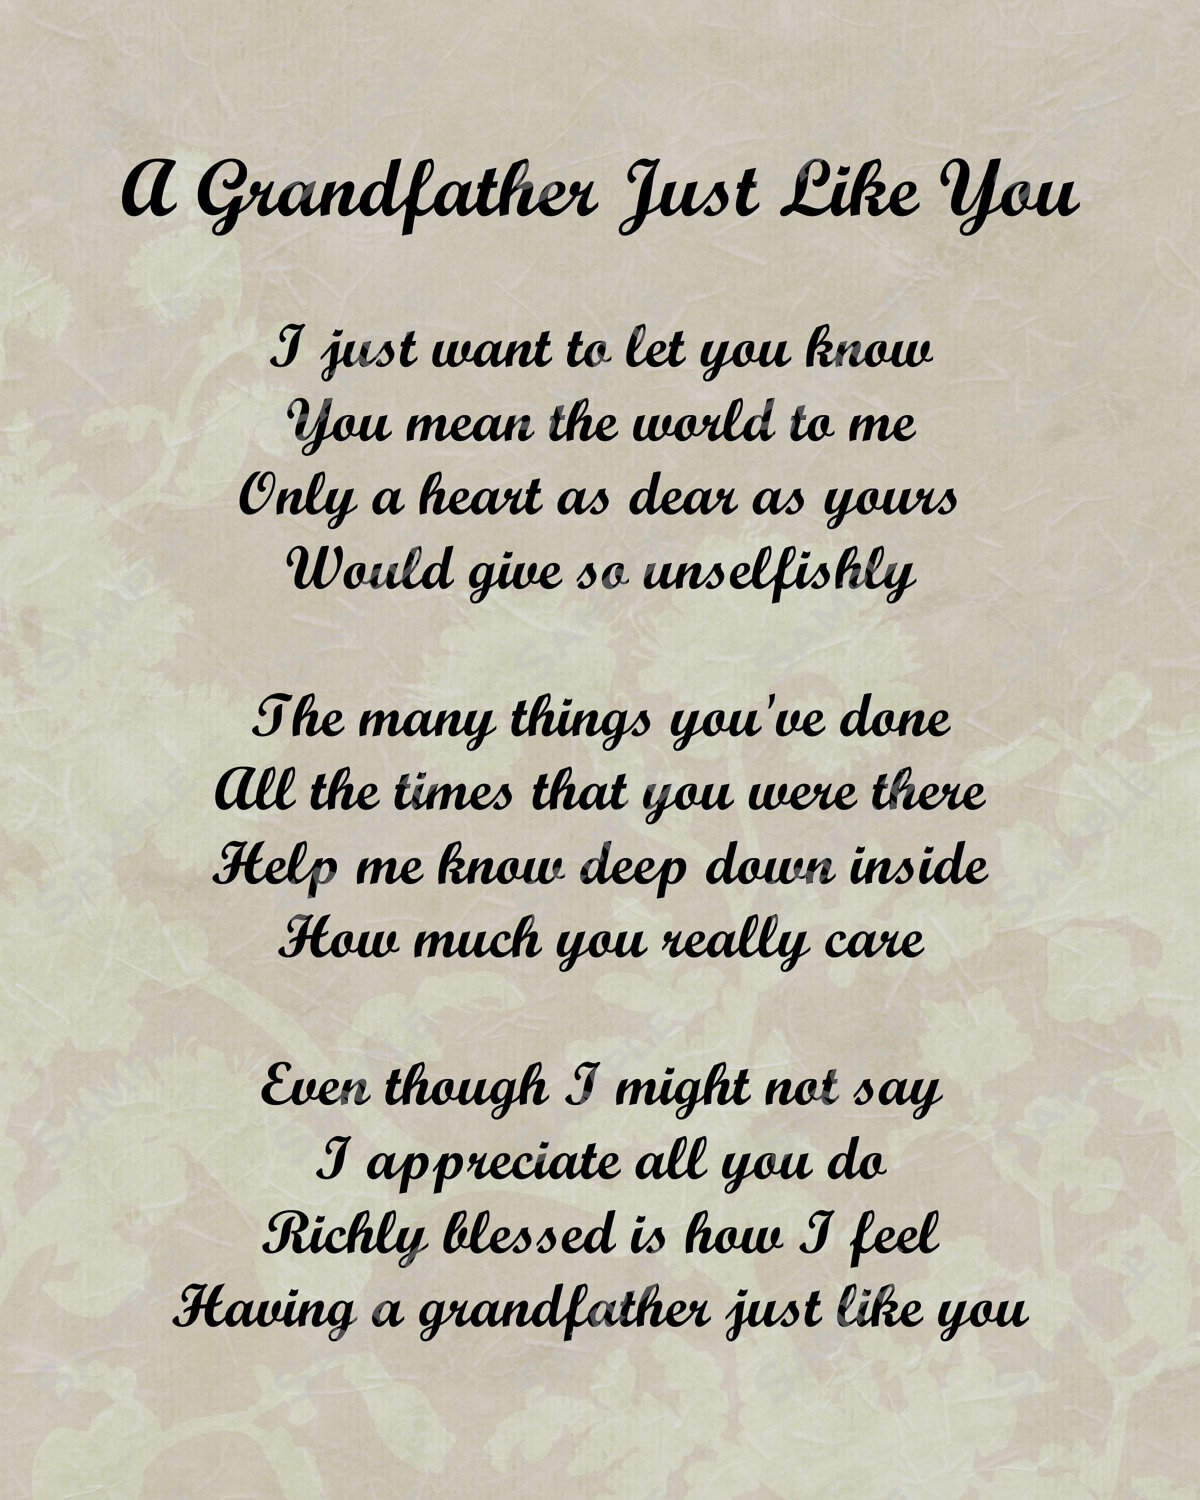 Grandpa Quotes: I Miss You Grandpa Quotes. QuotesGram